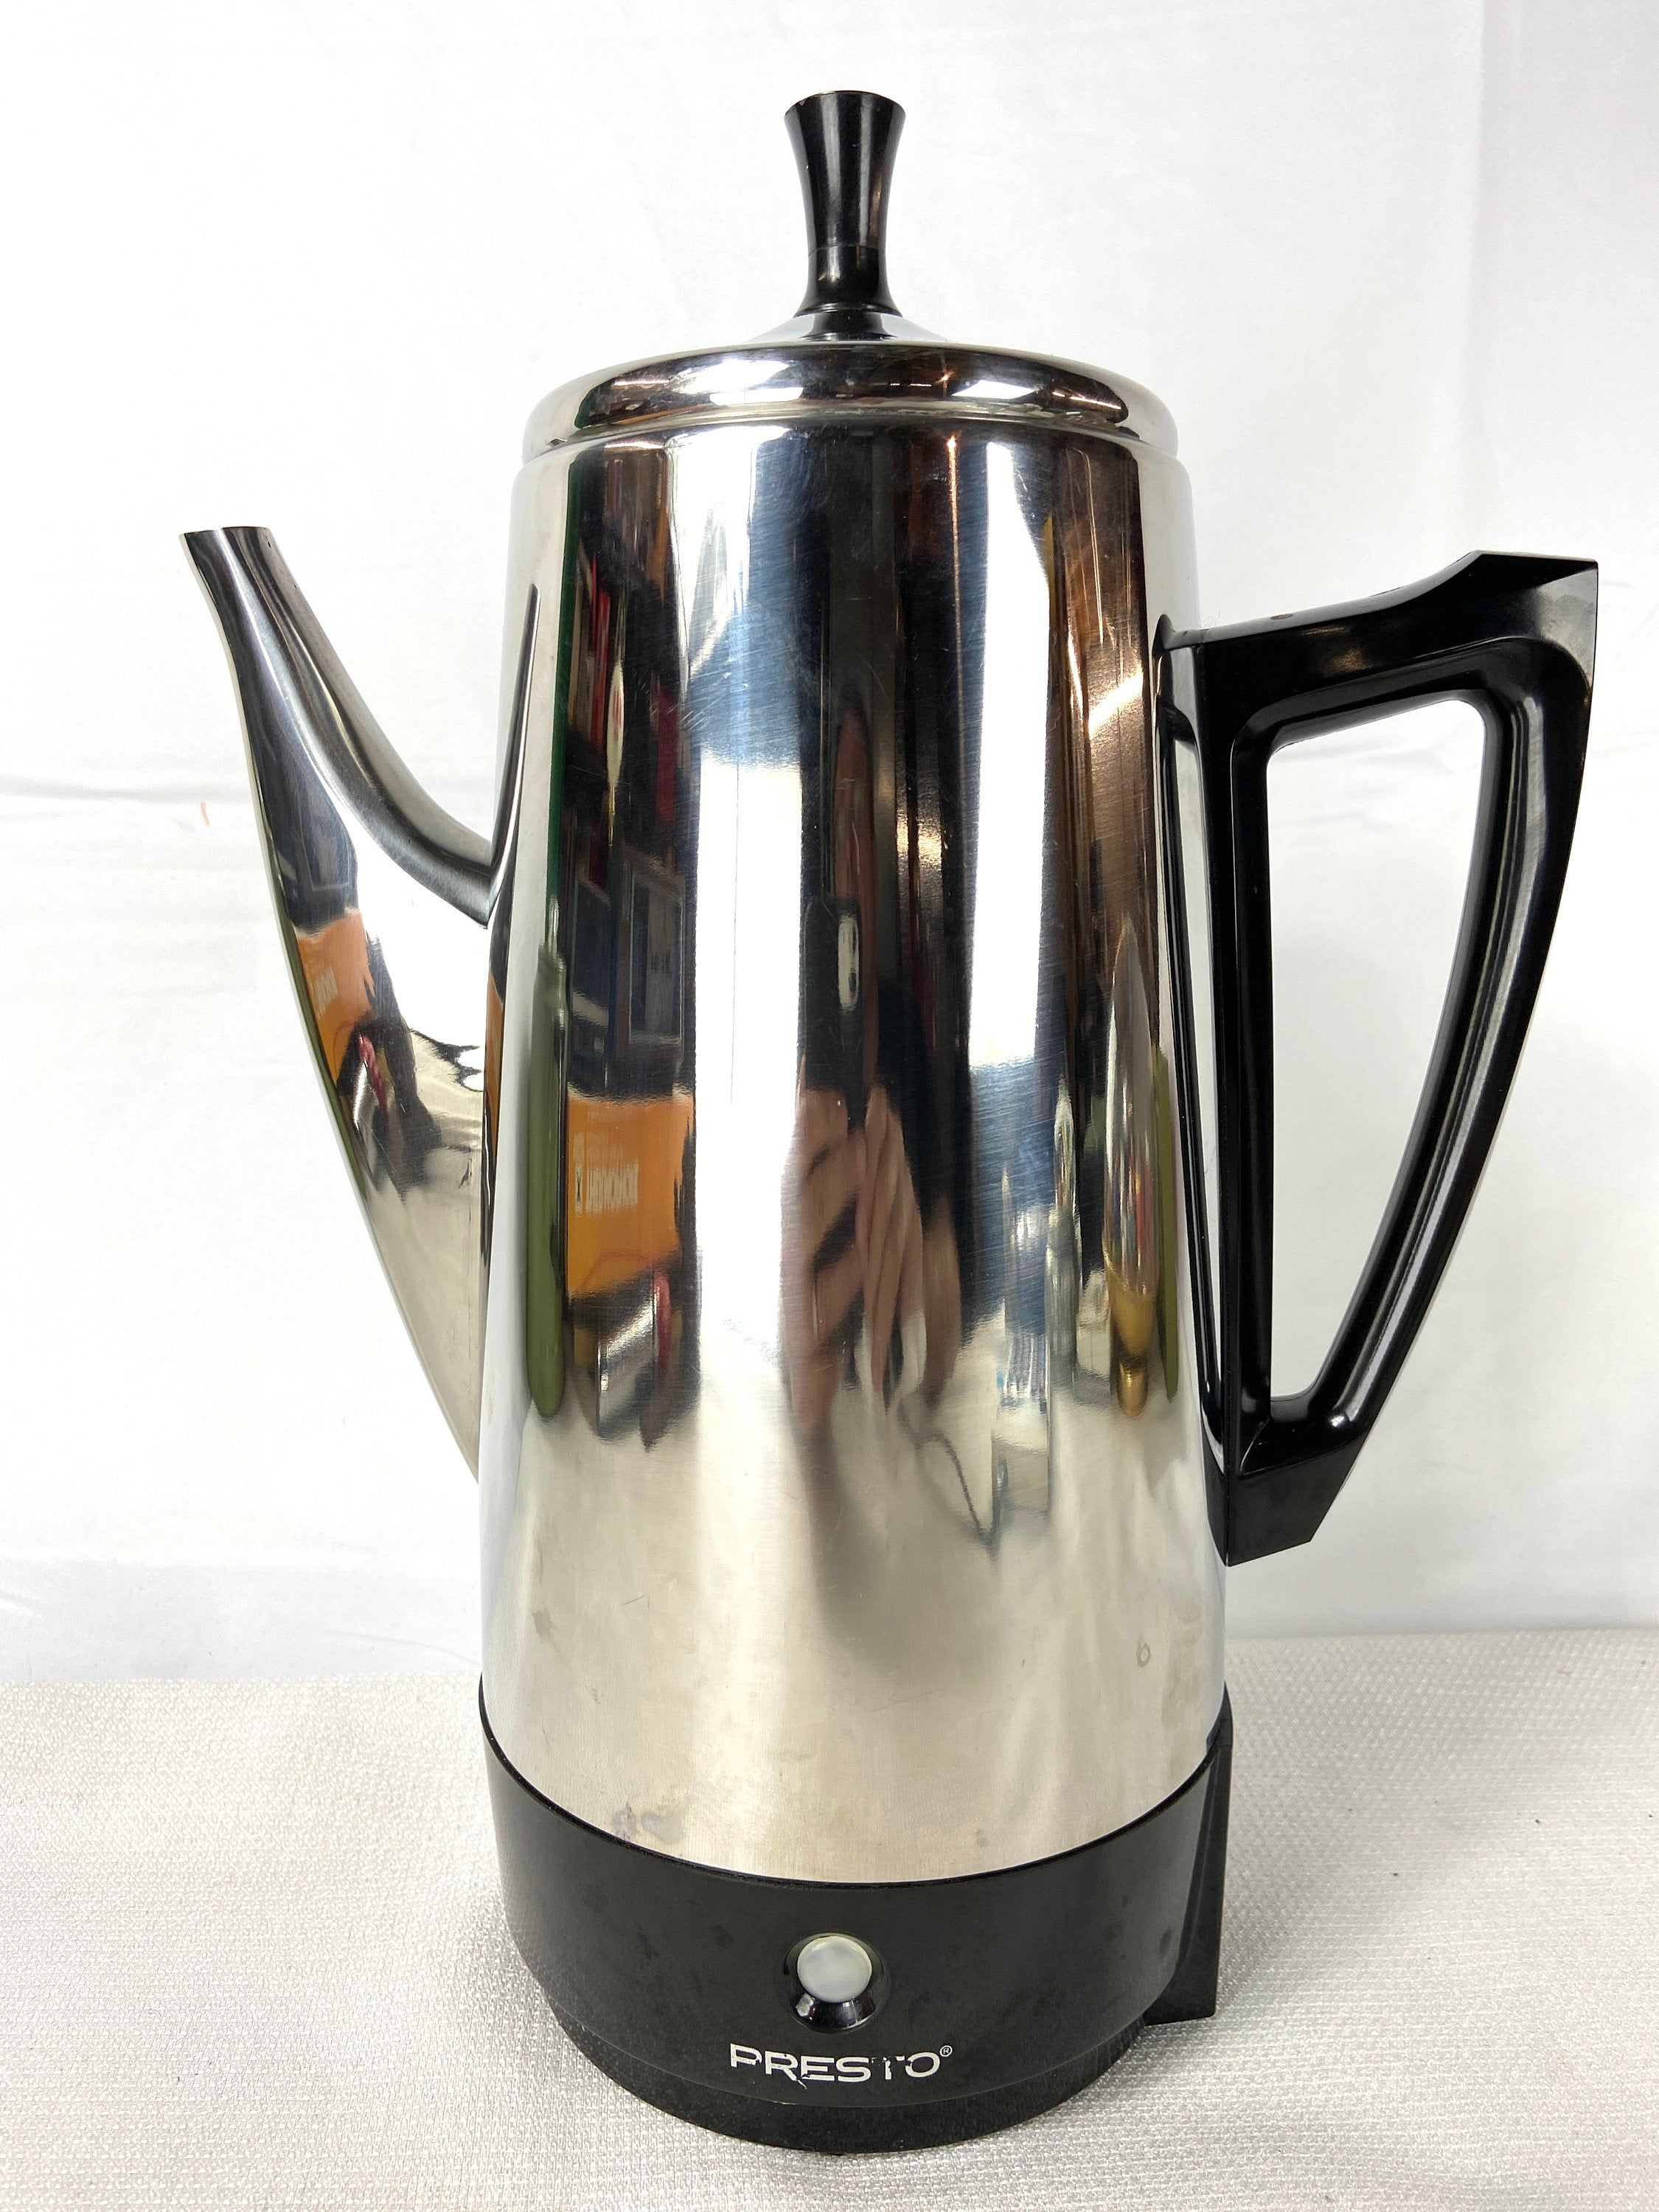 Presto 12 Cup Electric Coffee Percolator Model 0281105 Series 3515 In 2020 Percolator Coffee Percolator Electricity